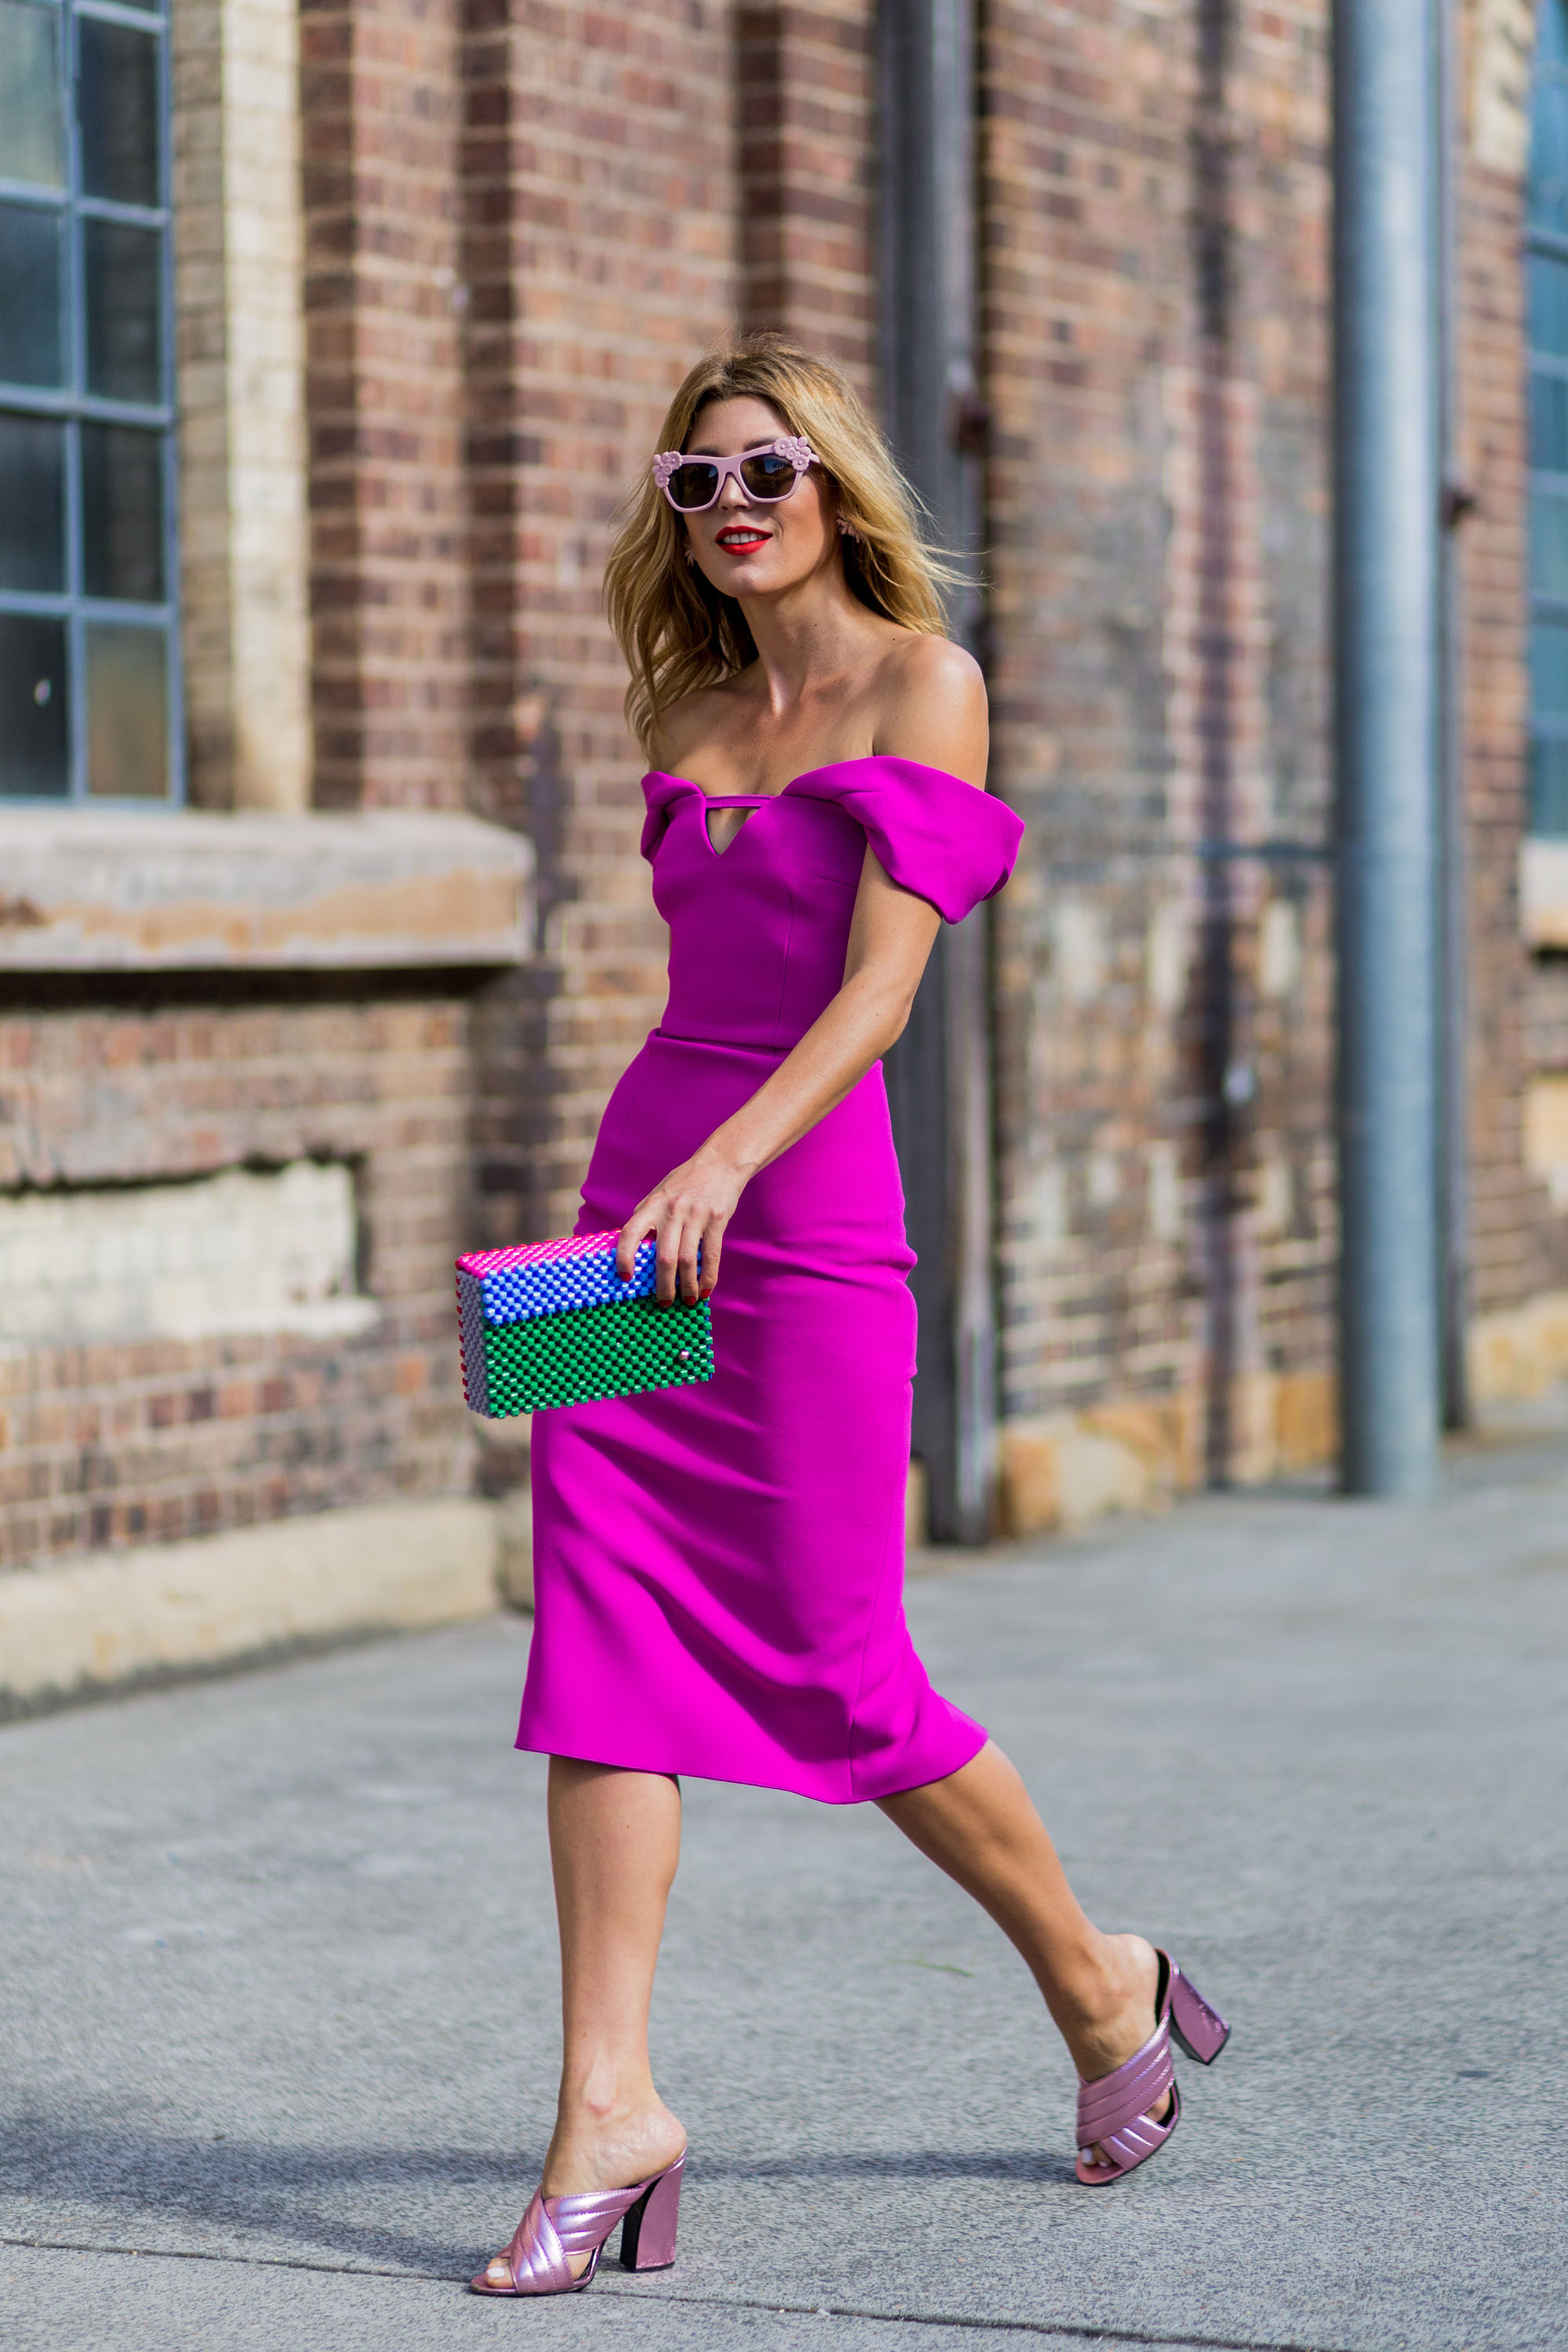 SYDNEY, AUSTRALIA - MAY 16: Tanja Gacic wearing a pink off shoulder dress from Yeojin Bae, a Lucy Folg clutch, Preen sunglasses and Gucci sandals outside Yeojin Bae at Mercedes-Benz Fashion Week Resort 17 Collections at Carriageworks on May 16, 2016 in Sydney, Australia.   (Photo by Christian Vierig/WireImage)